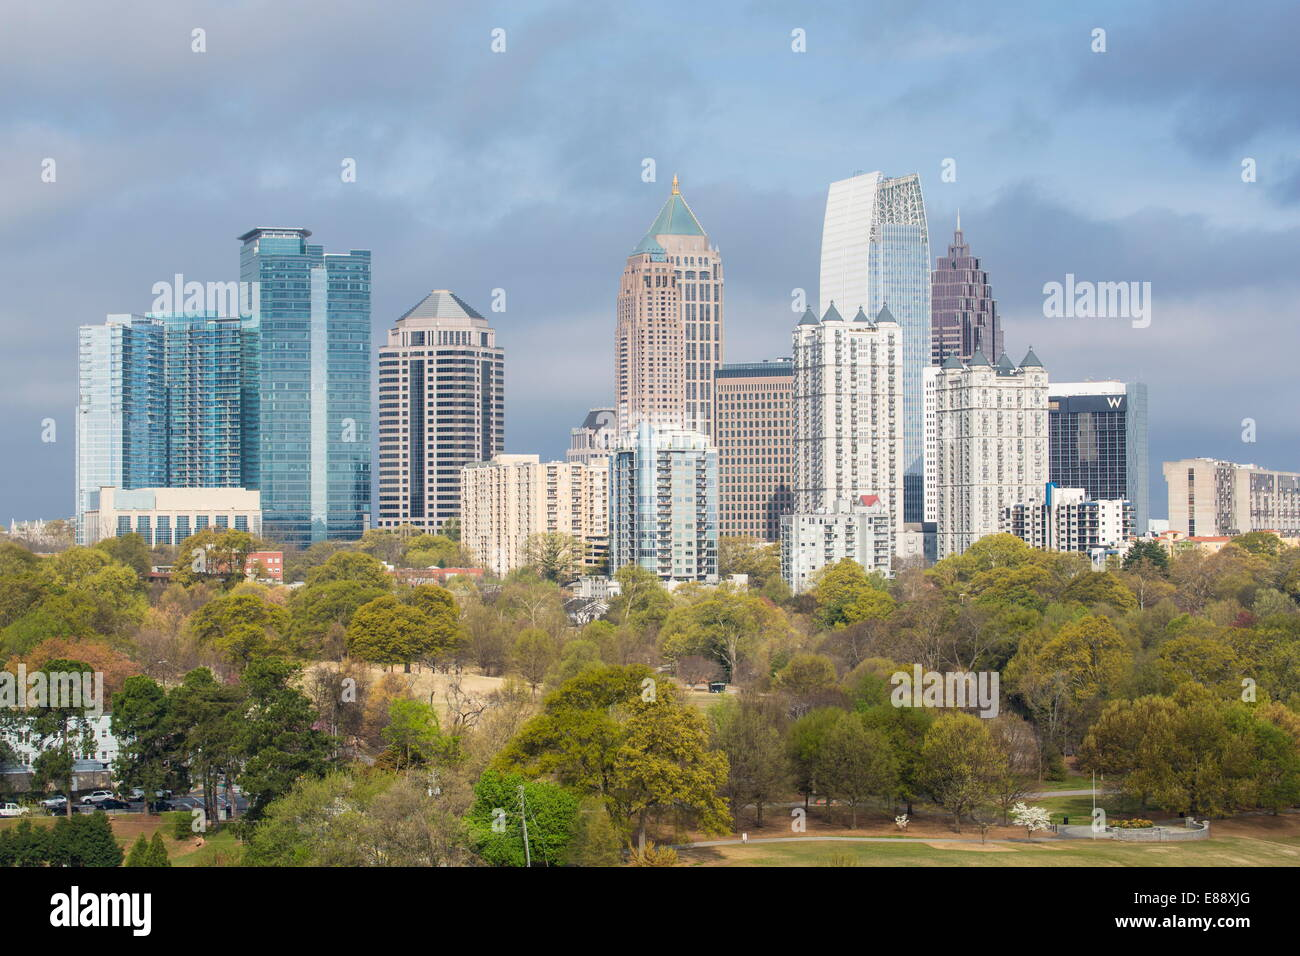 Midtown skyline from Piedmont Park, Atlanta, Georgia, United States of America, North America - Stock Image